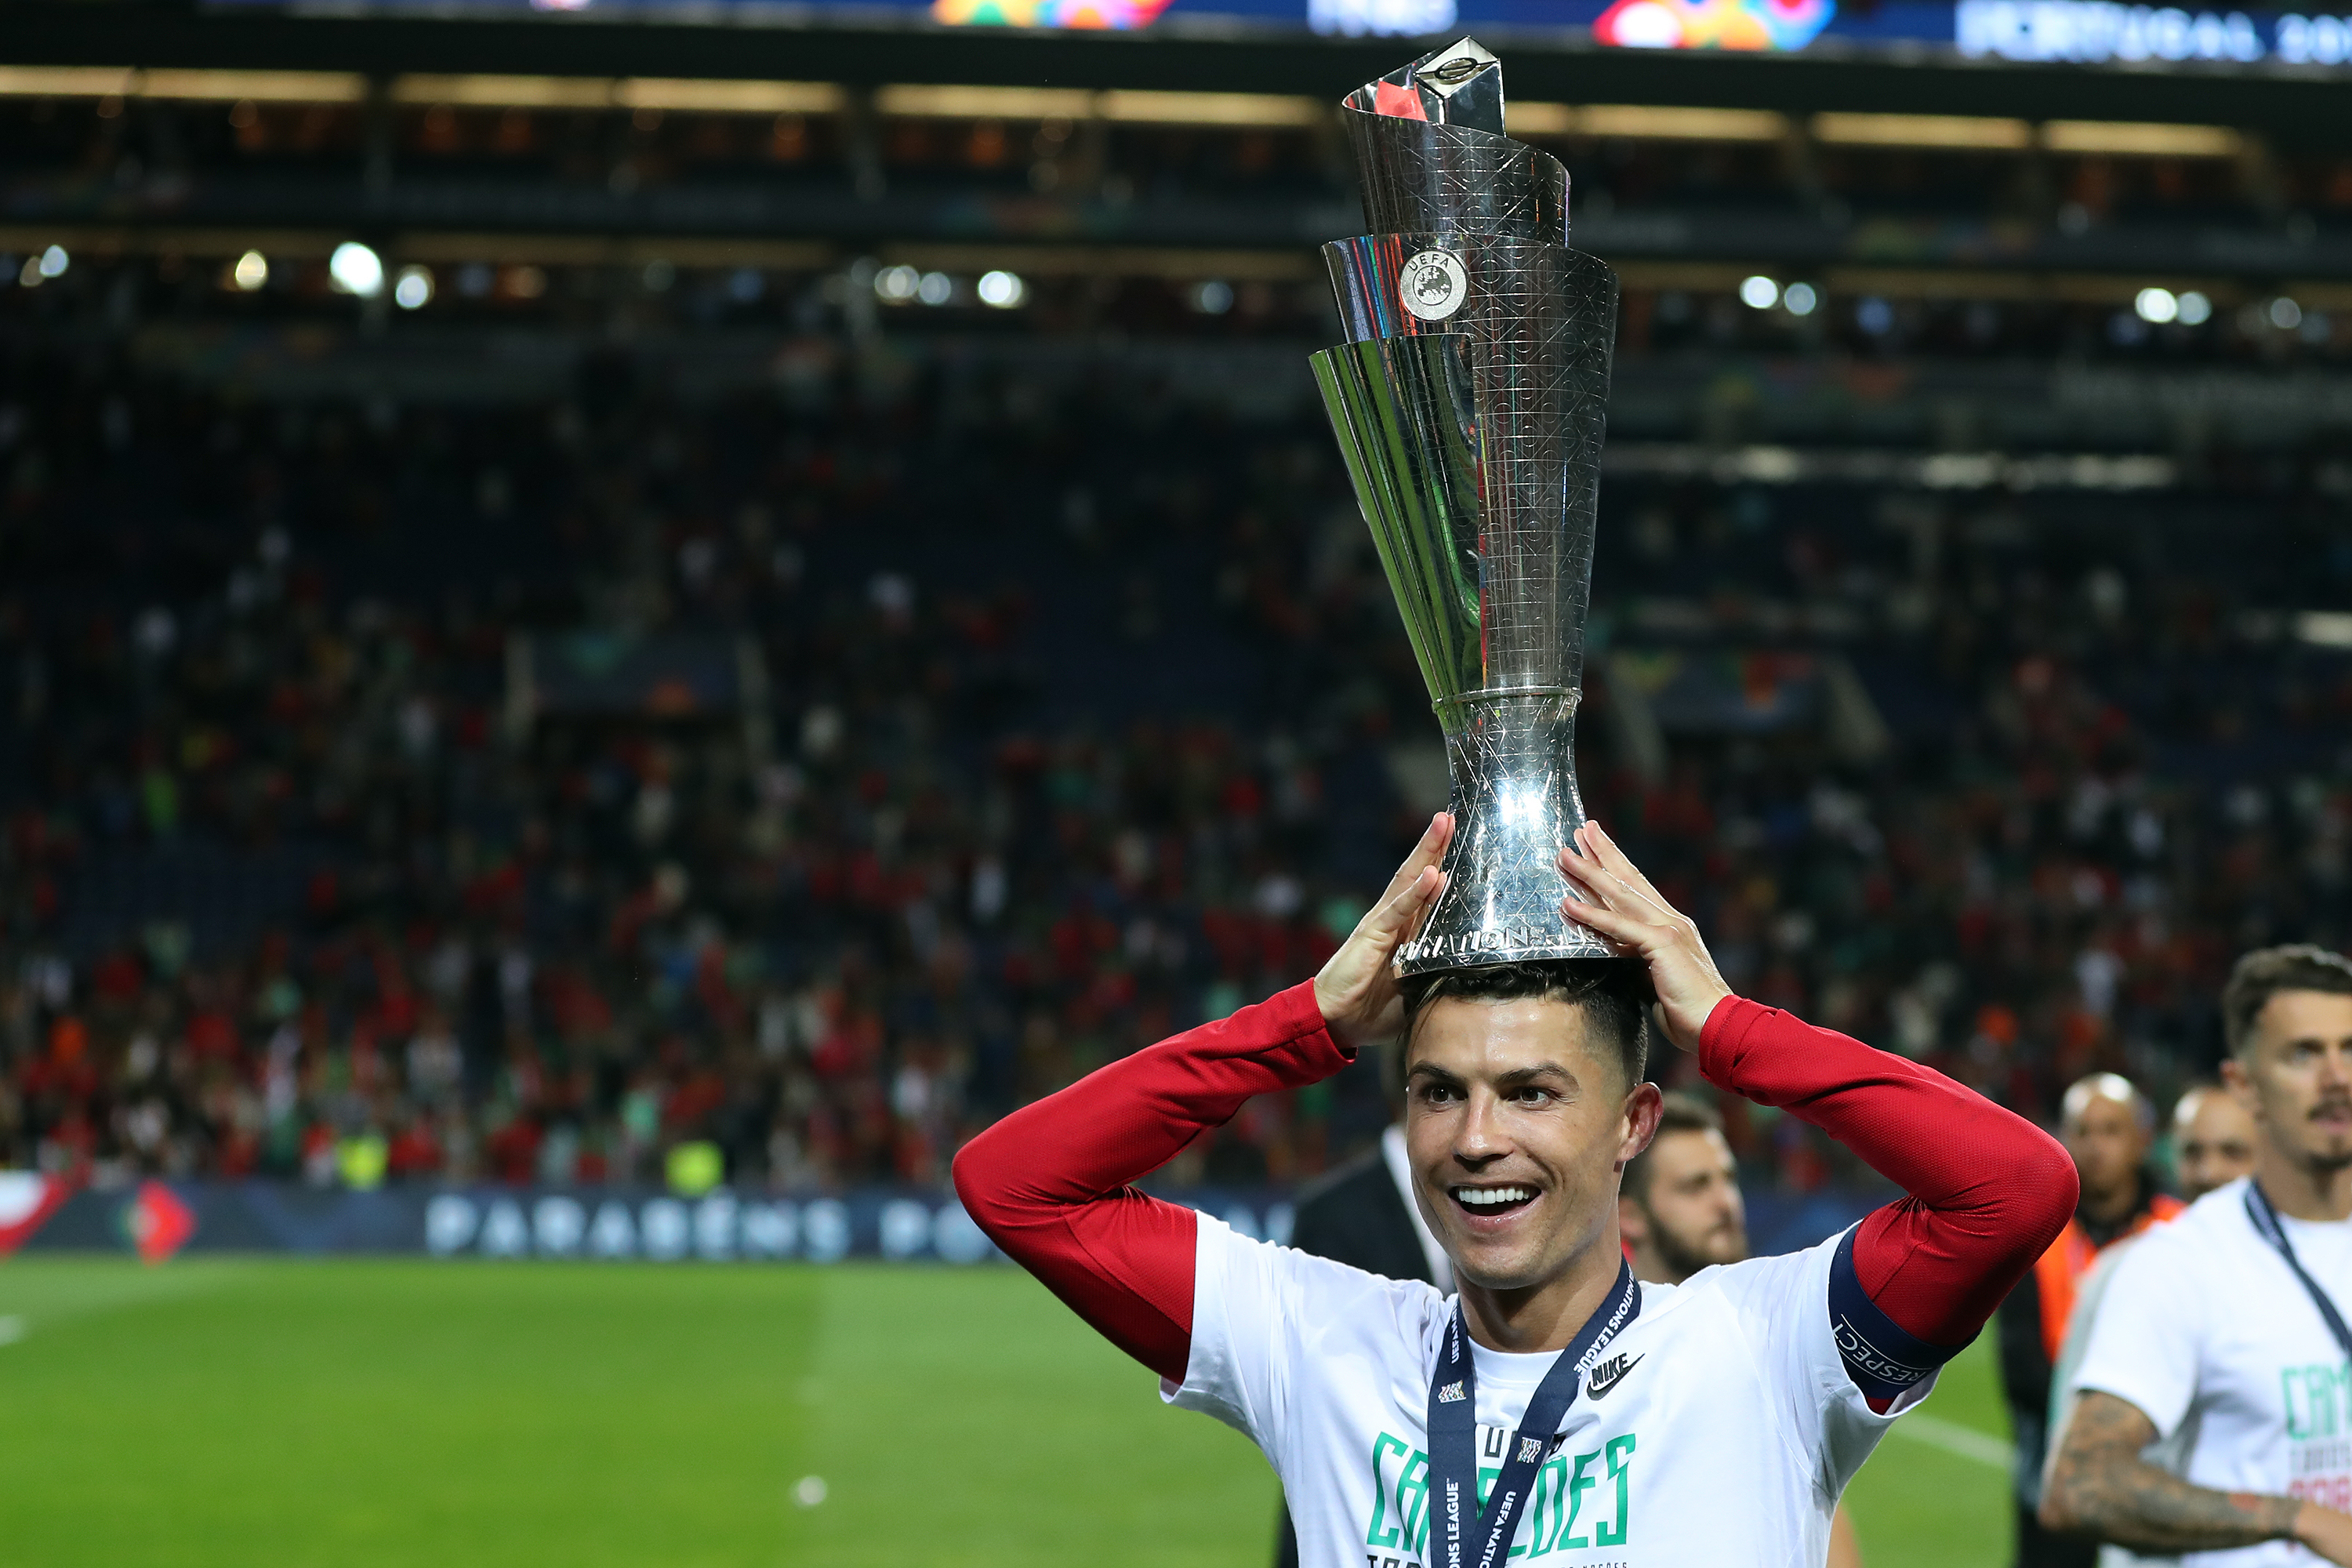 Ronaldo with the Nations League trophy. Image: PA Images